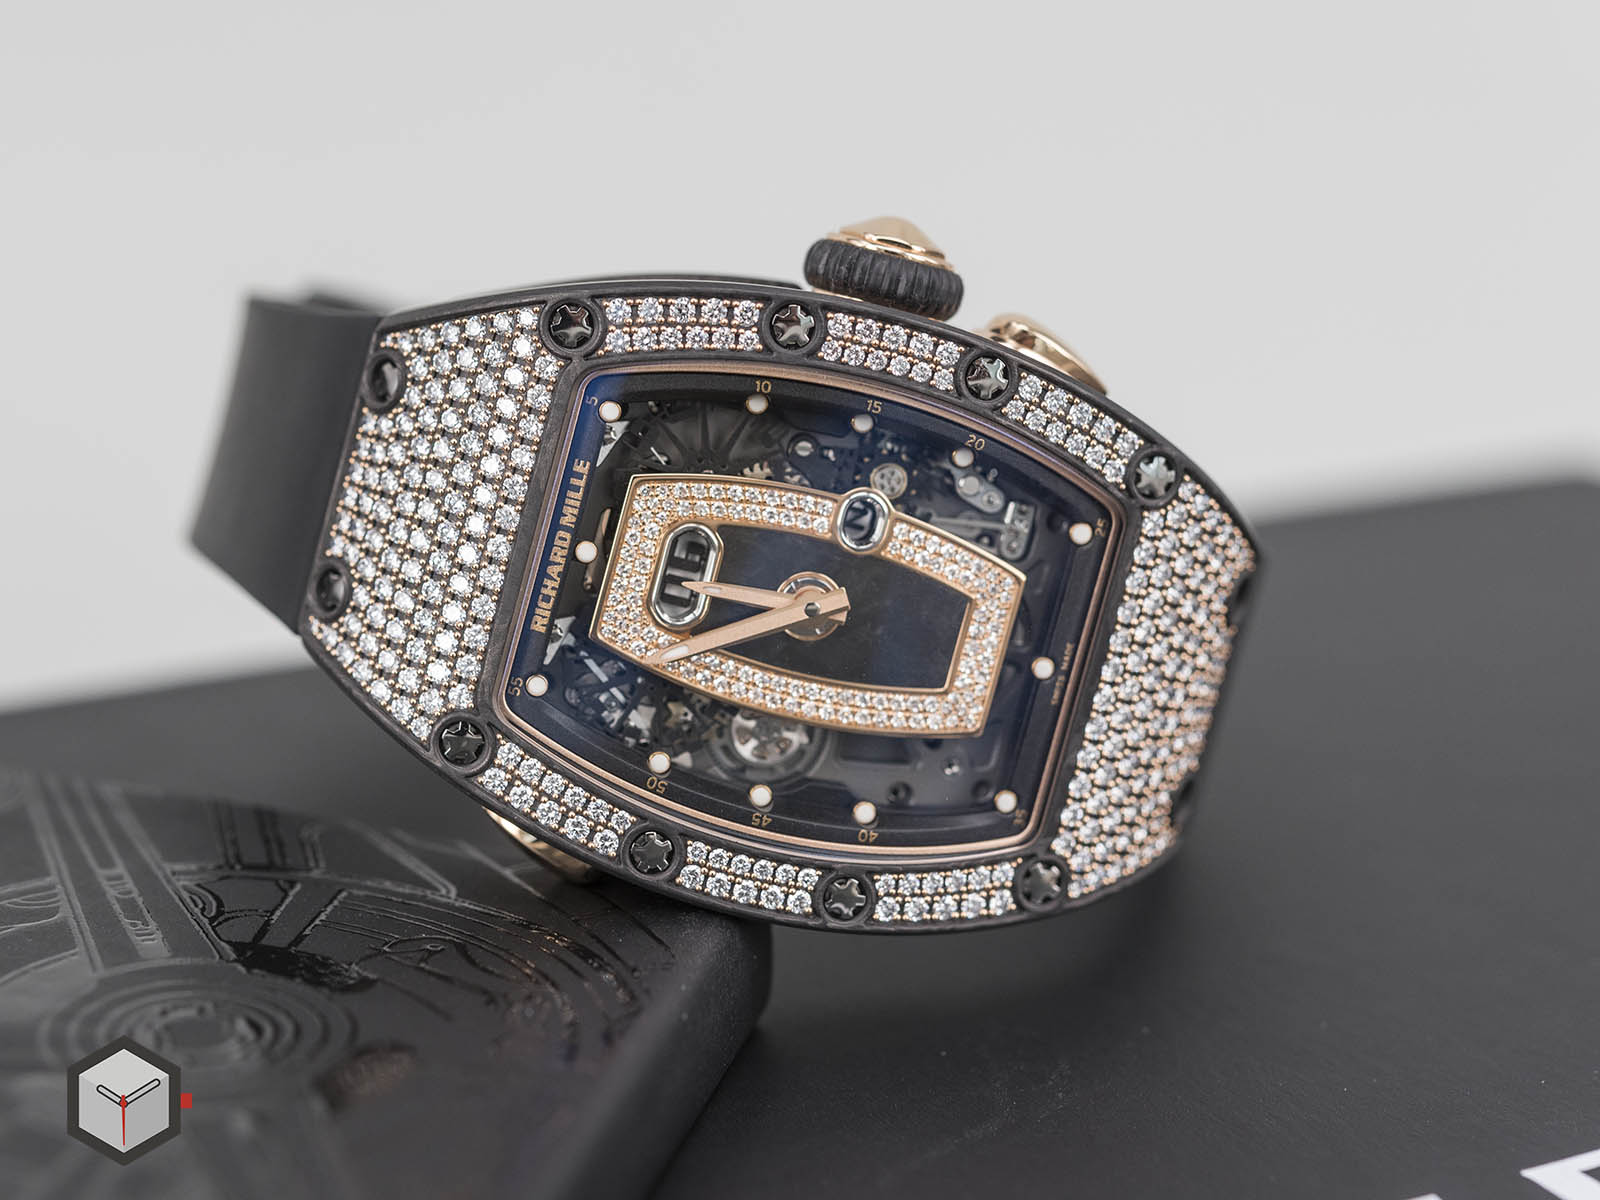 richard-mille-rm-037-automatic-2.jpg